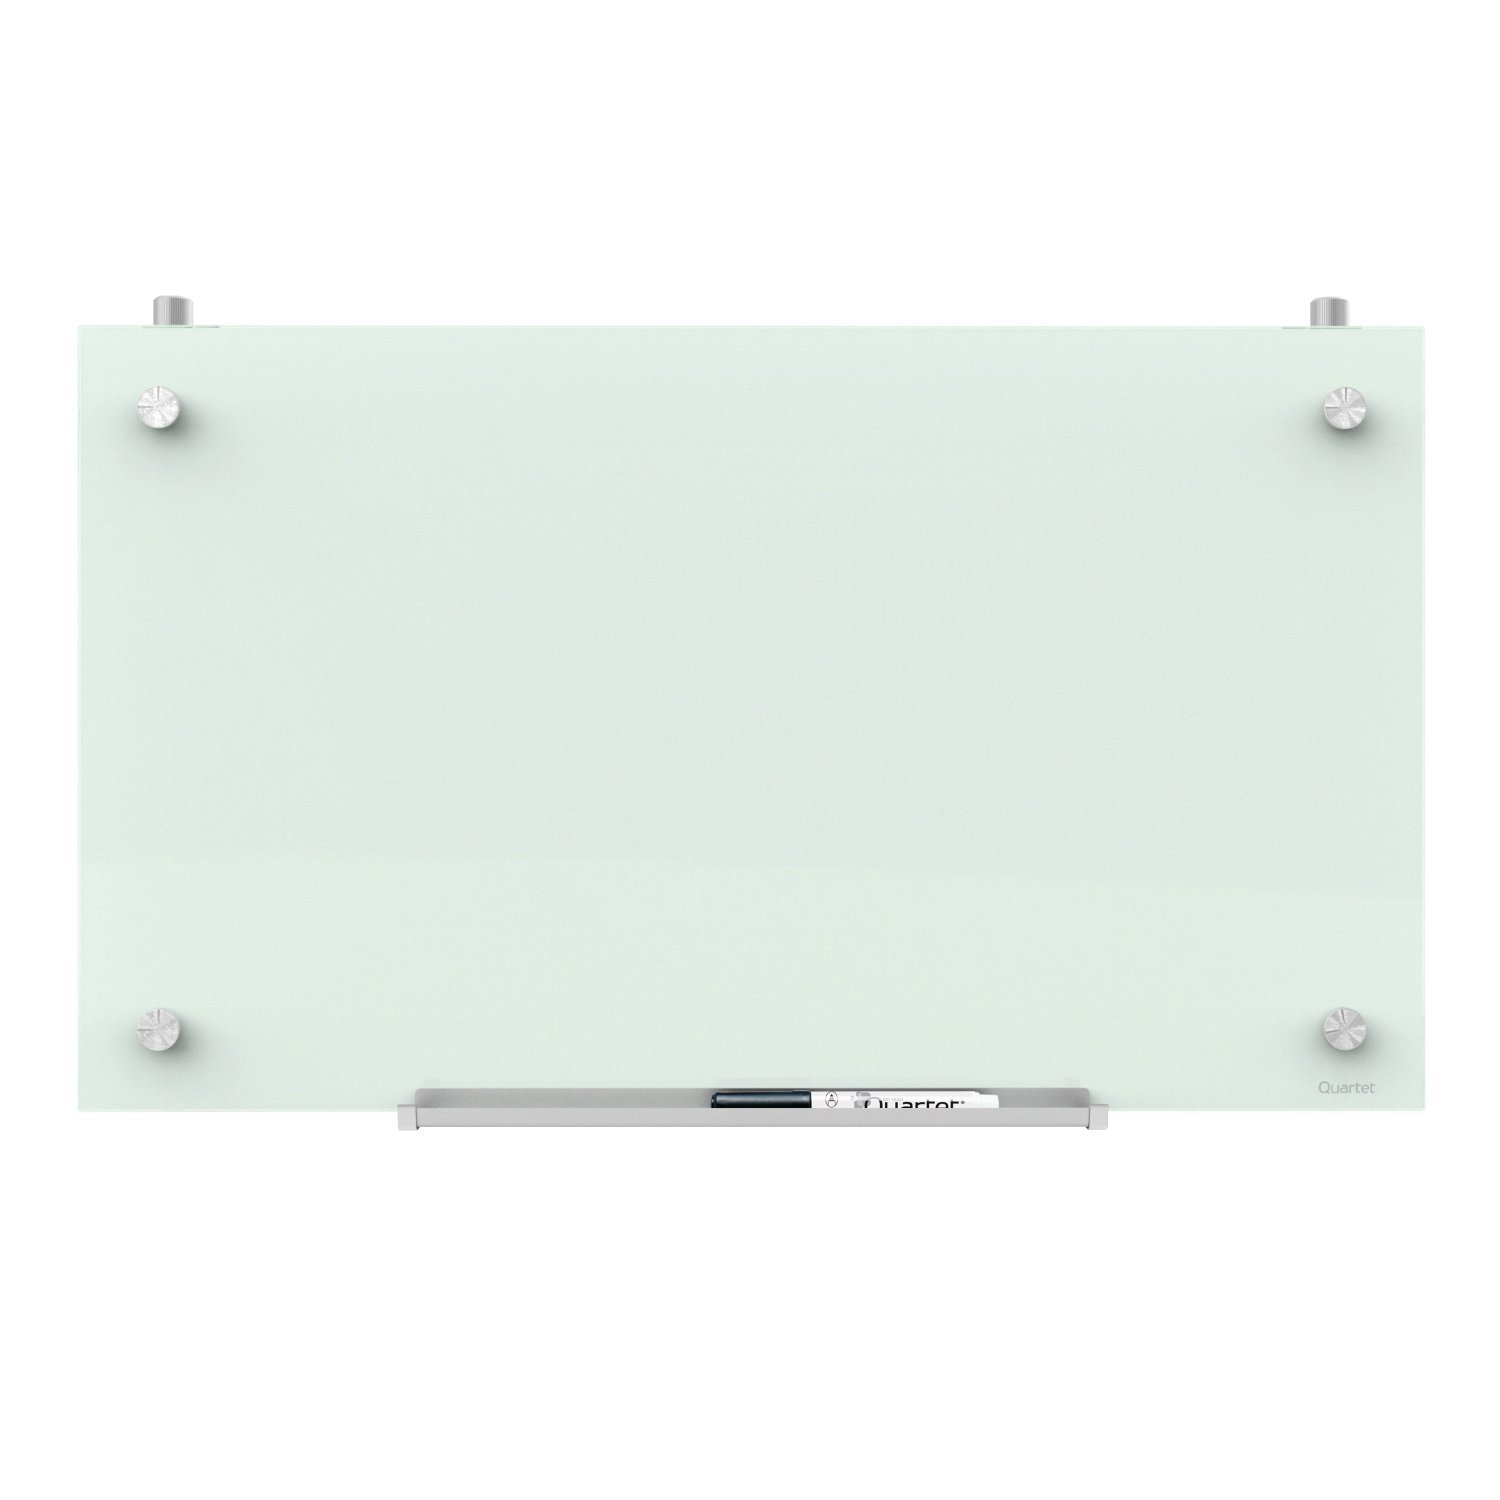 "Quartet Magnetic Whiteboard for Cubicle Walls, Glass White Board, Dry Erase Board, 30"" x 18"", Workspace, Office, White Surface, Infinity (PDEC1830)"